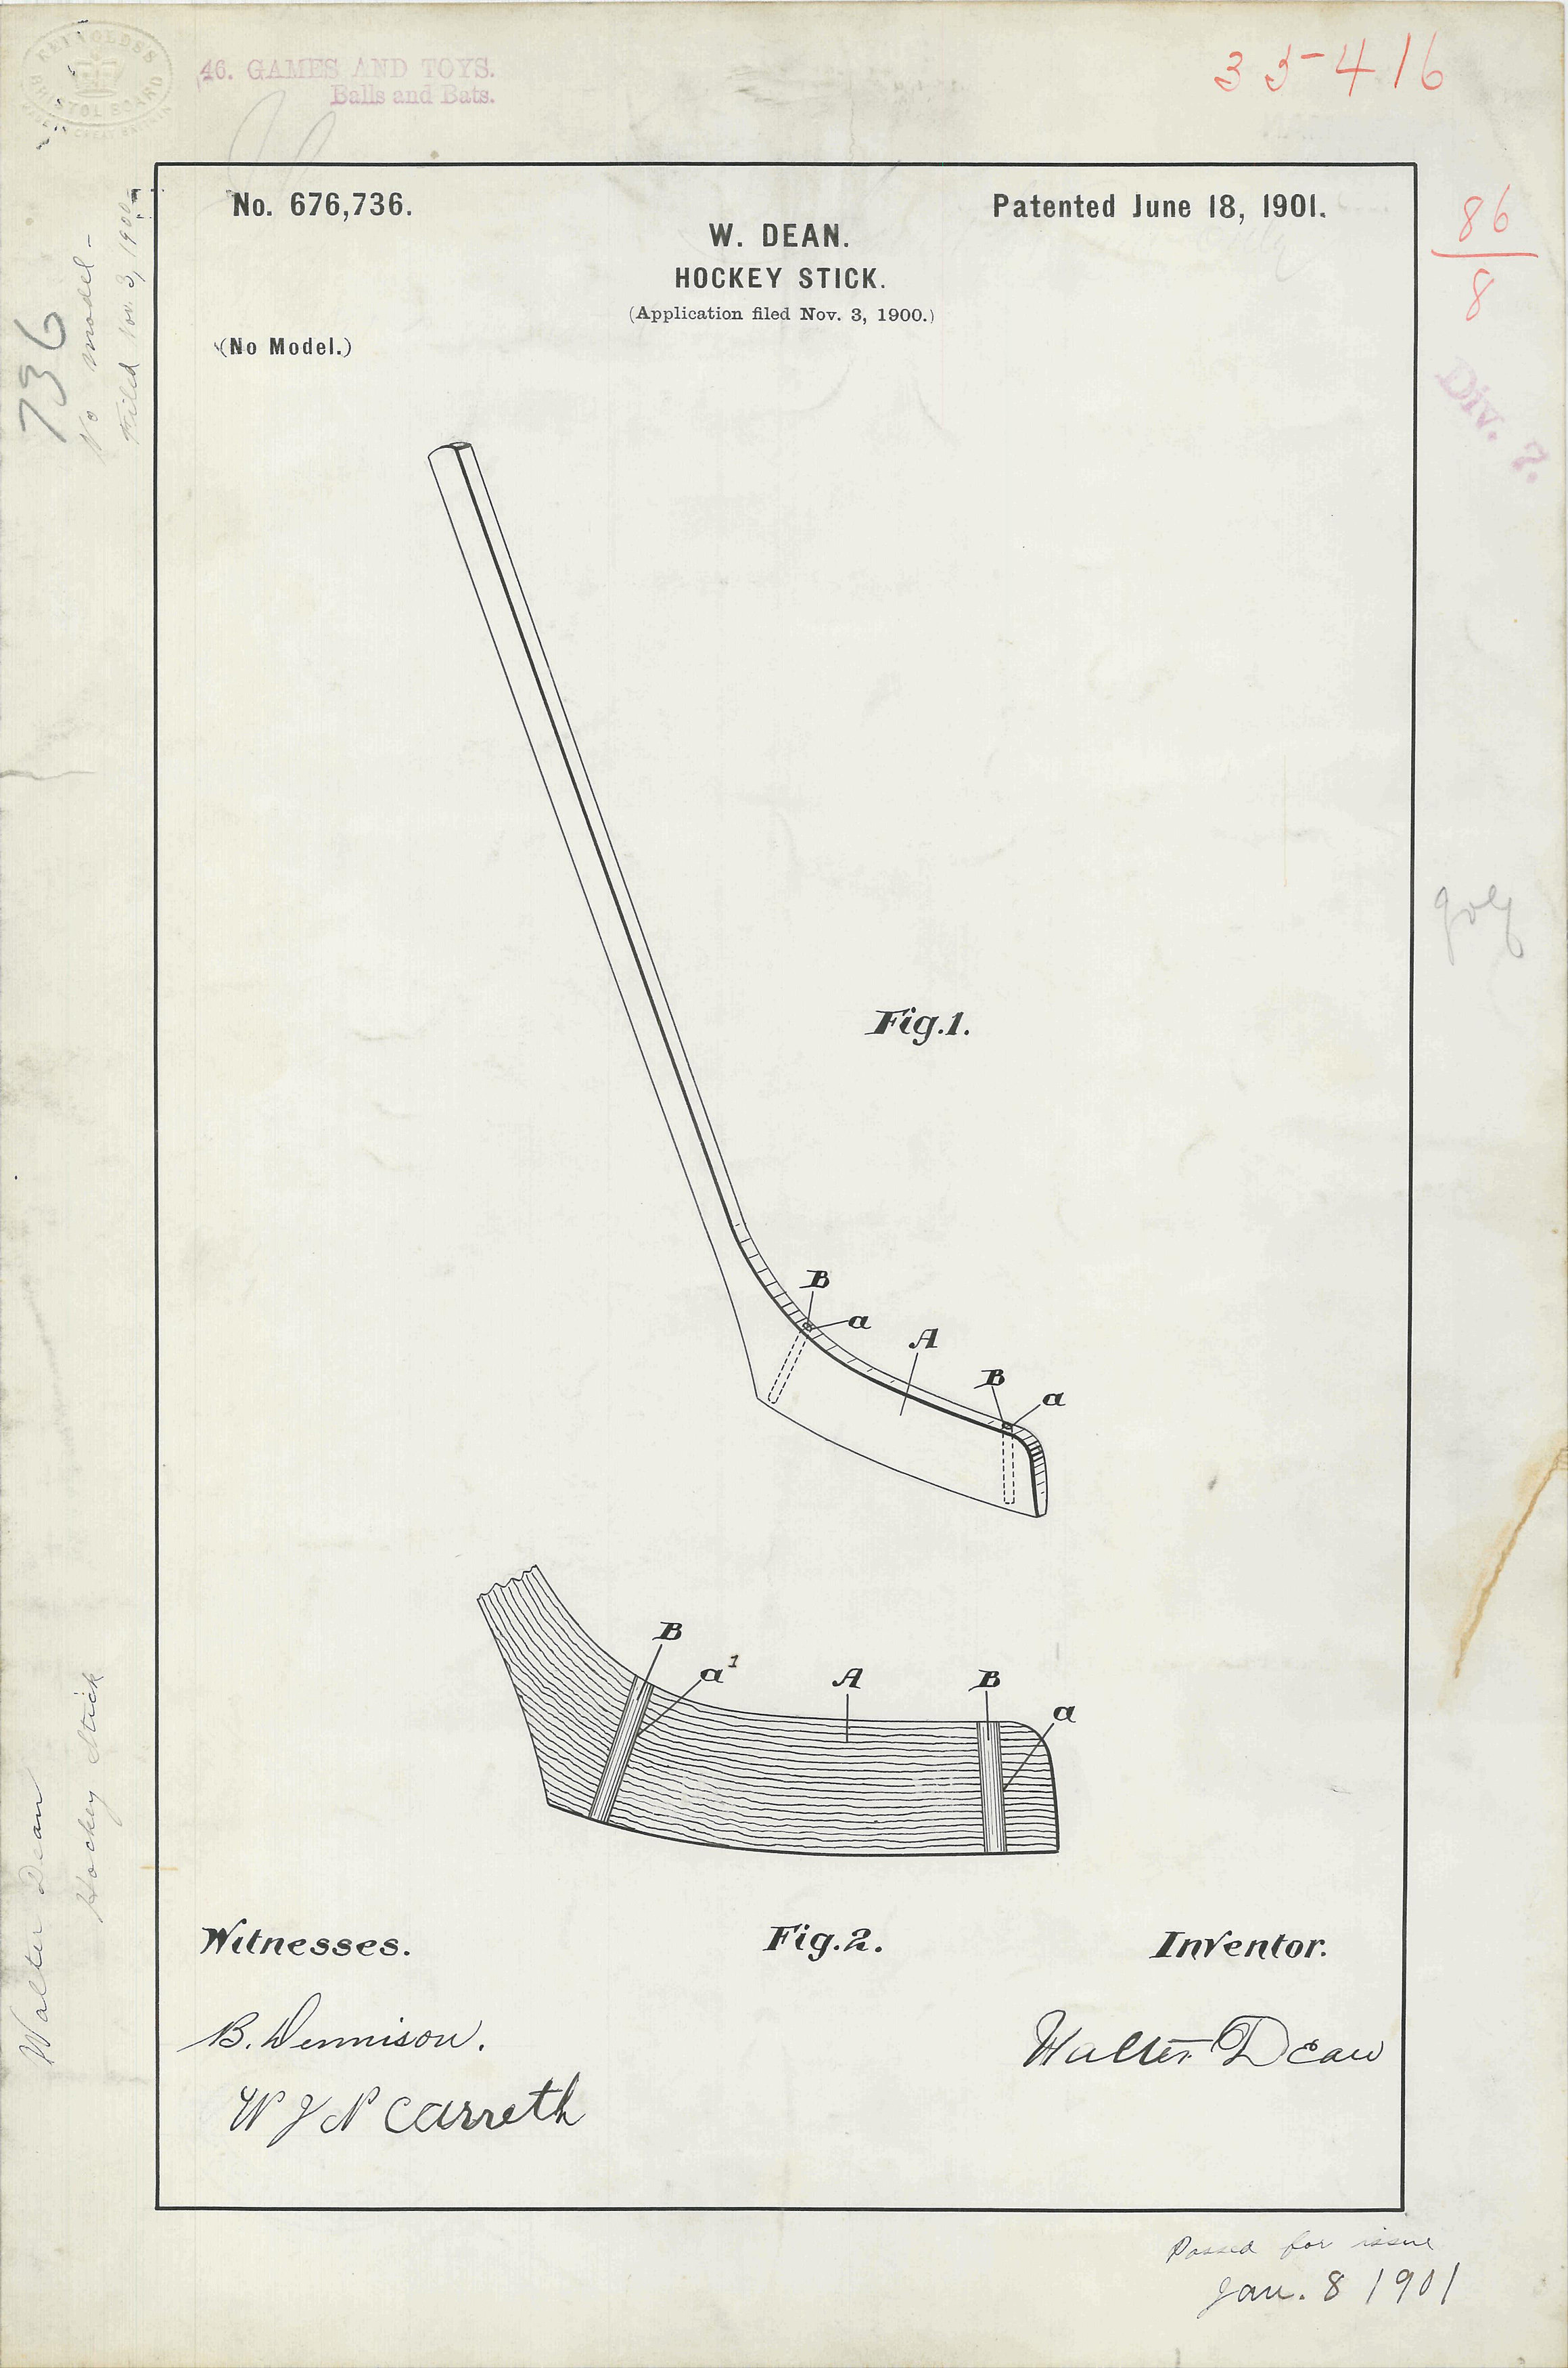 Patent drawing for W. Dean's Hockey Stick